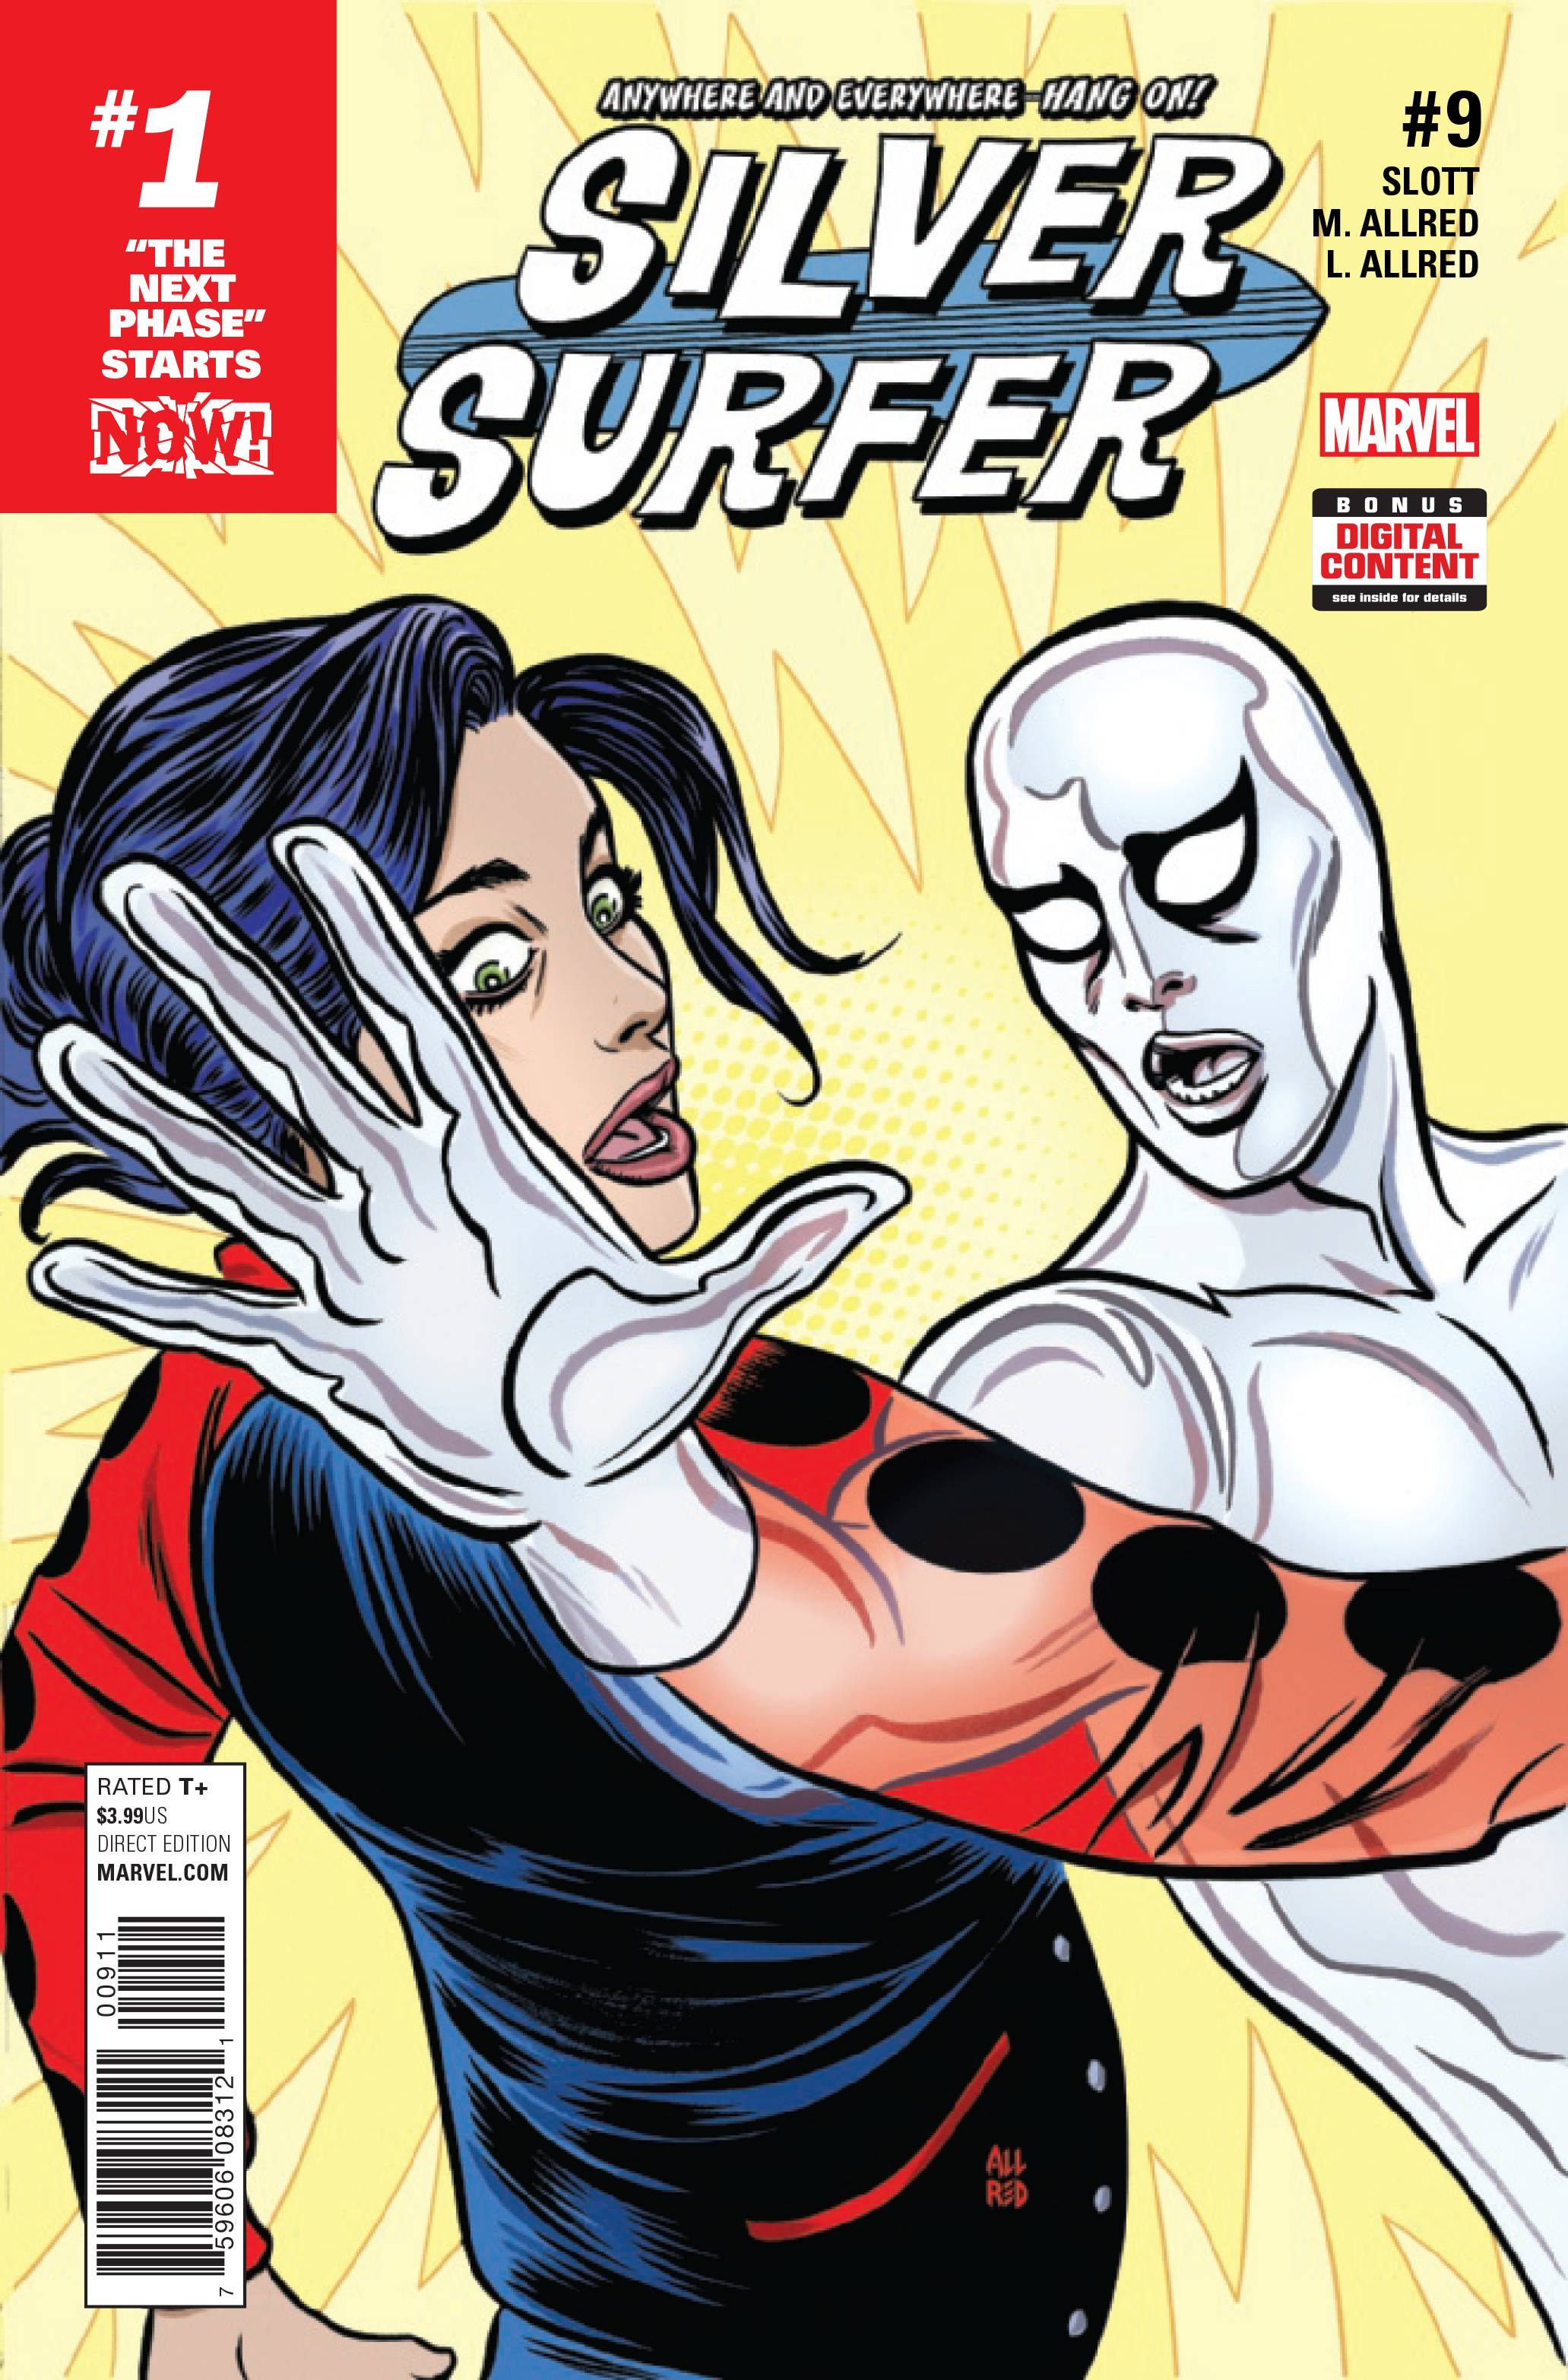 SILVER SURFER #9 NOW